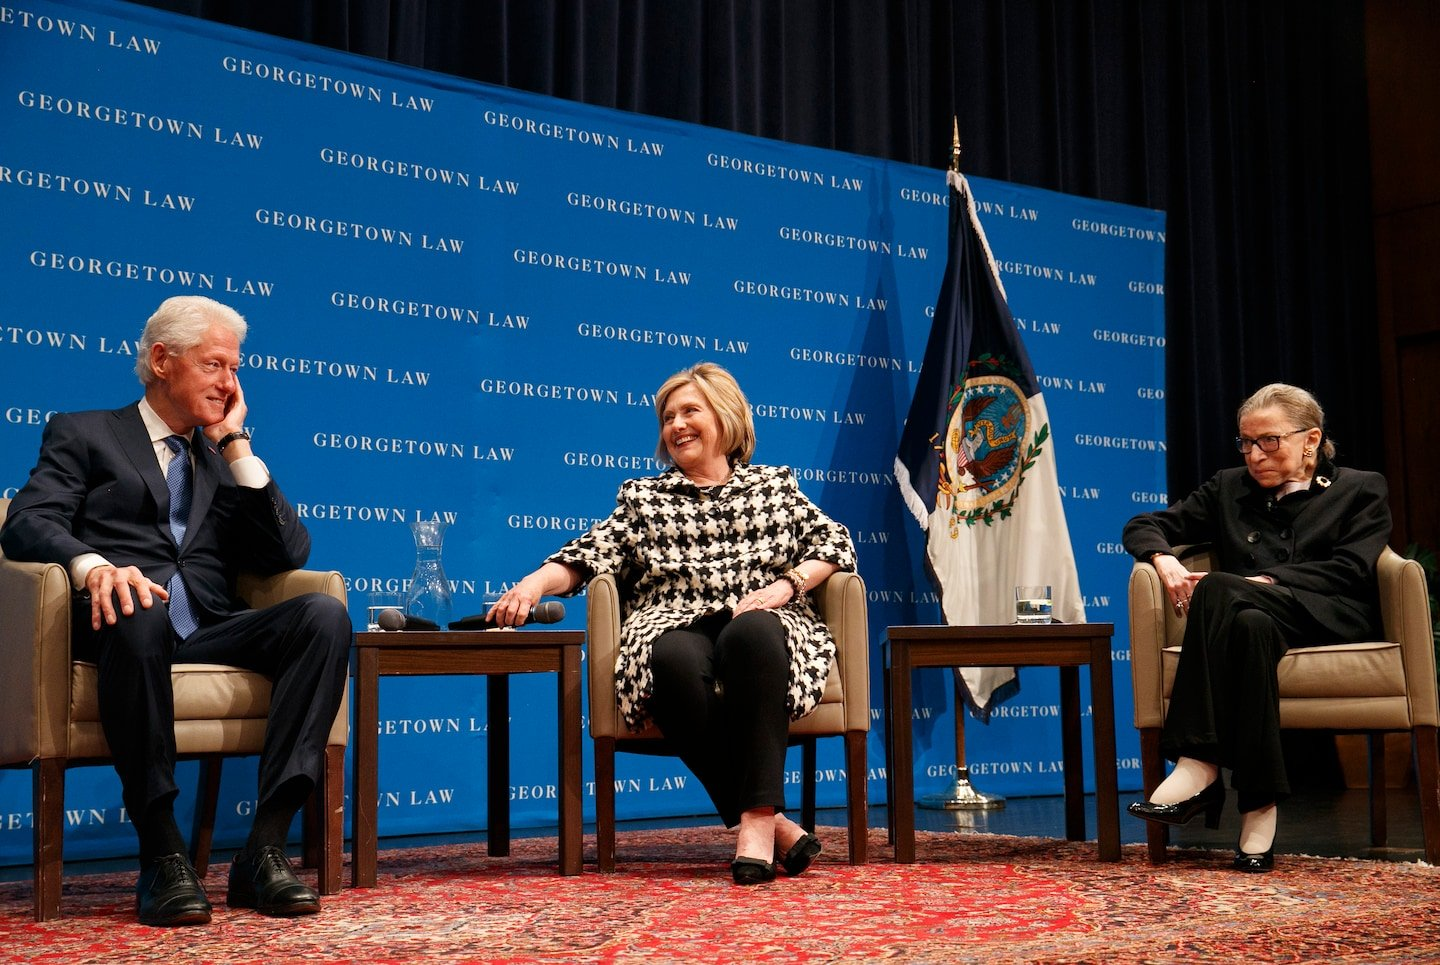 Ruth Bader Ginsburg, Bill and Hillary Clinton reminisce about her nomination